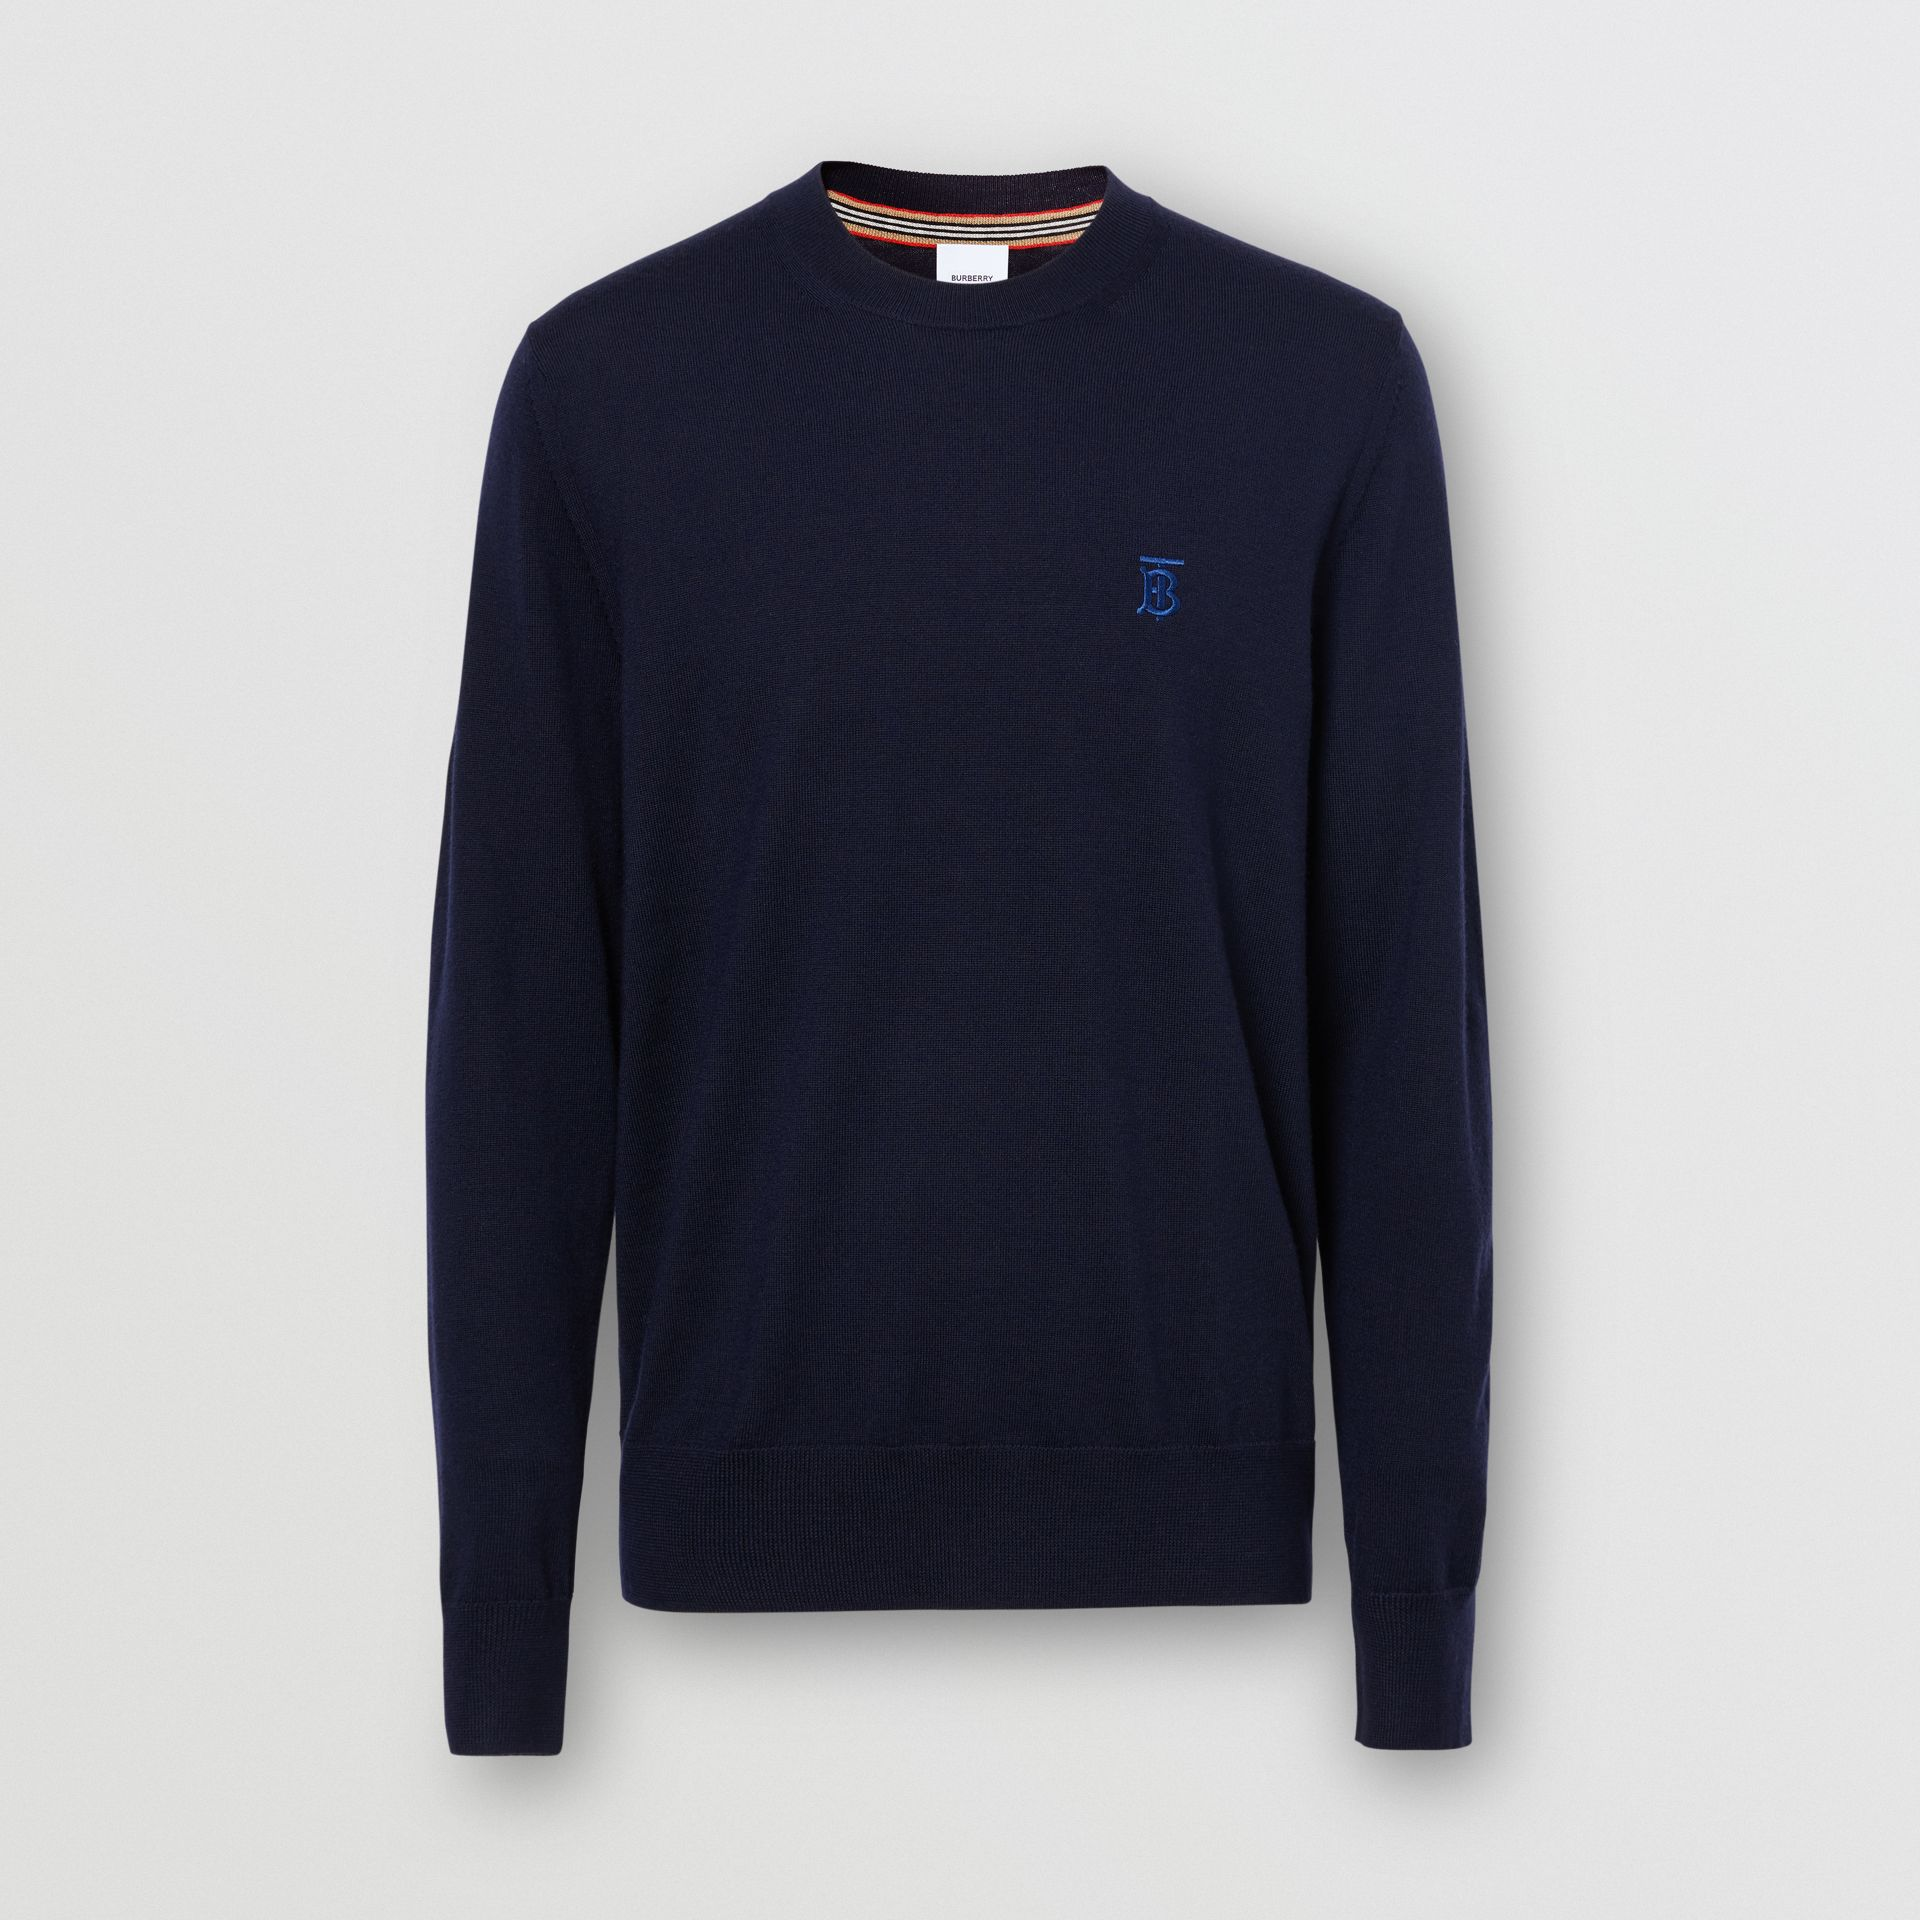 Monogram Motif Merino Wool Sweater in Navy - Men | Burberry - gallery image 3